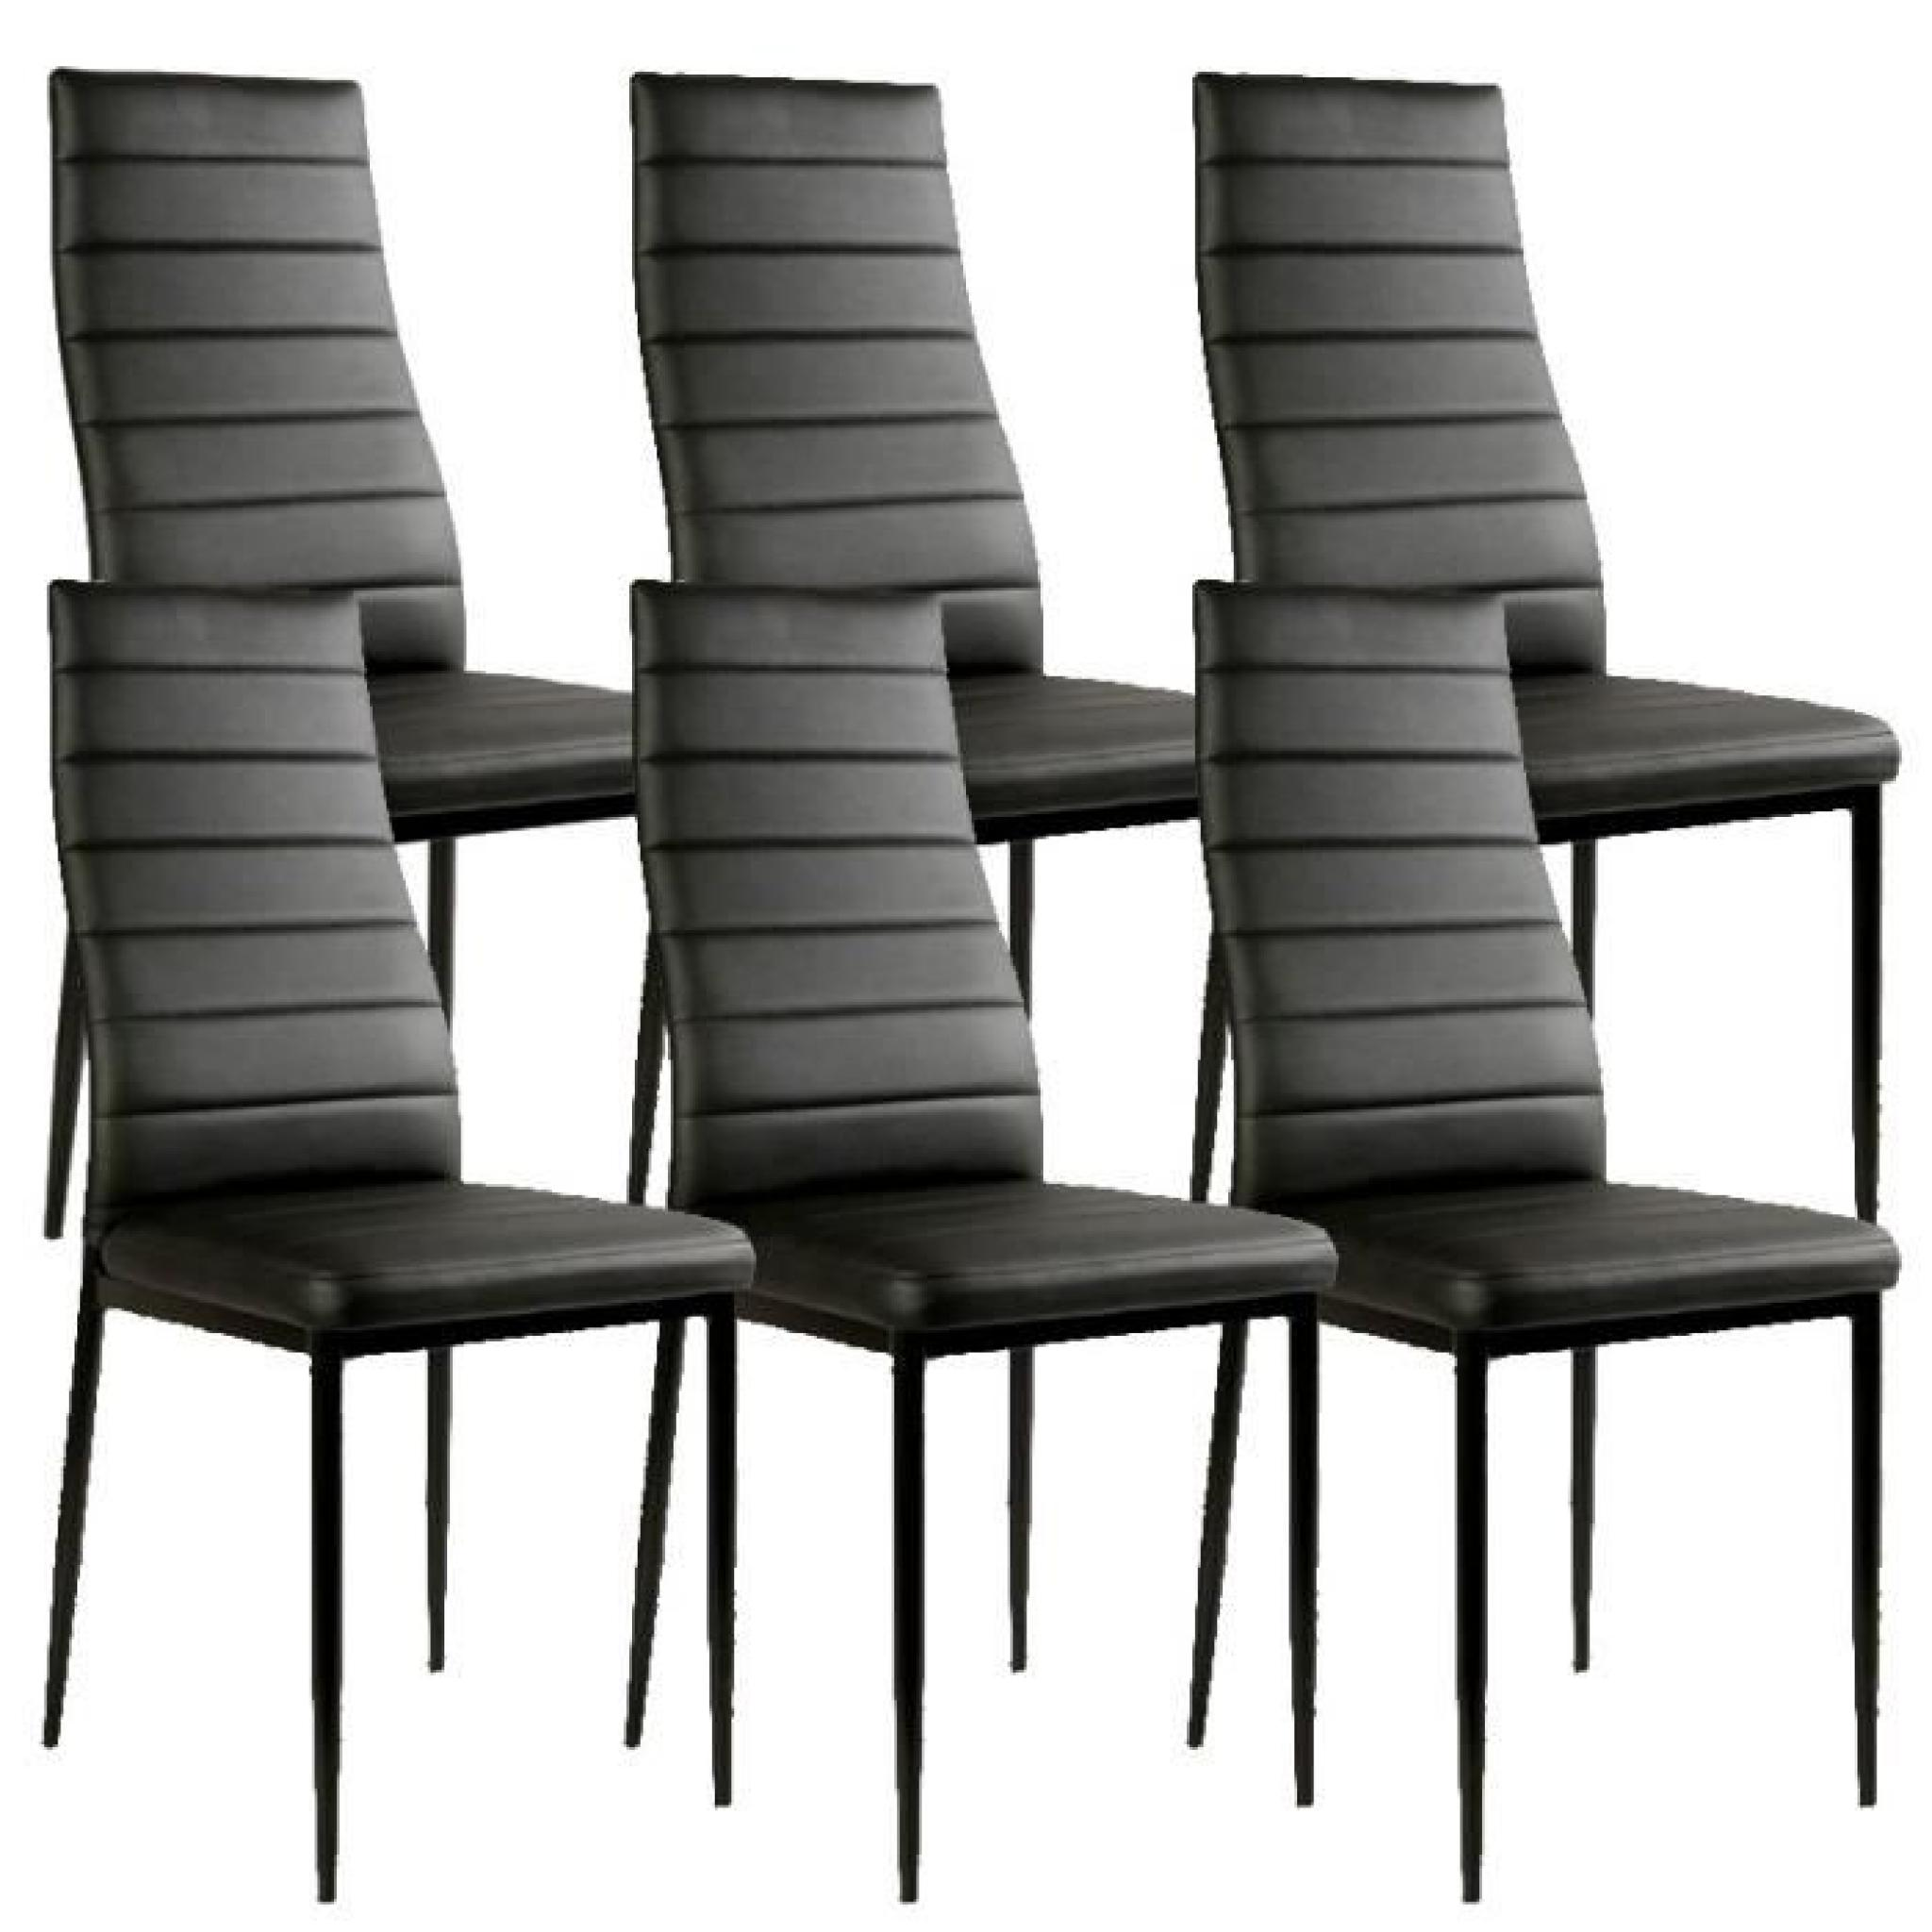 chaise noir giga matelass e lot de 6 achat vente chaise. Black Bedroom Furniture Sets. Home Design Ideas